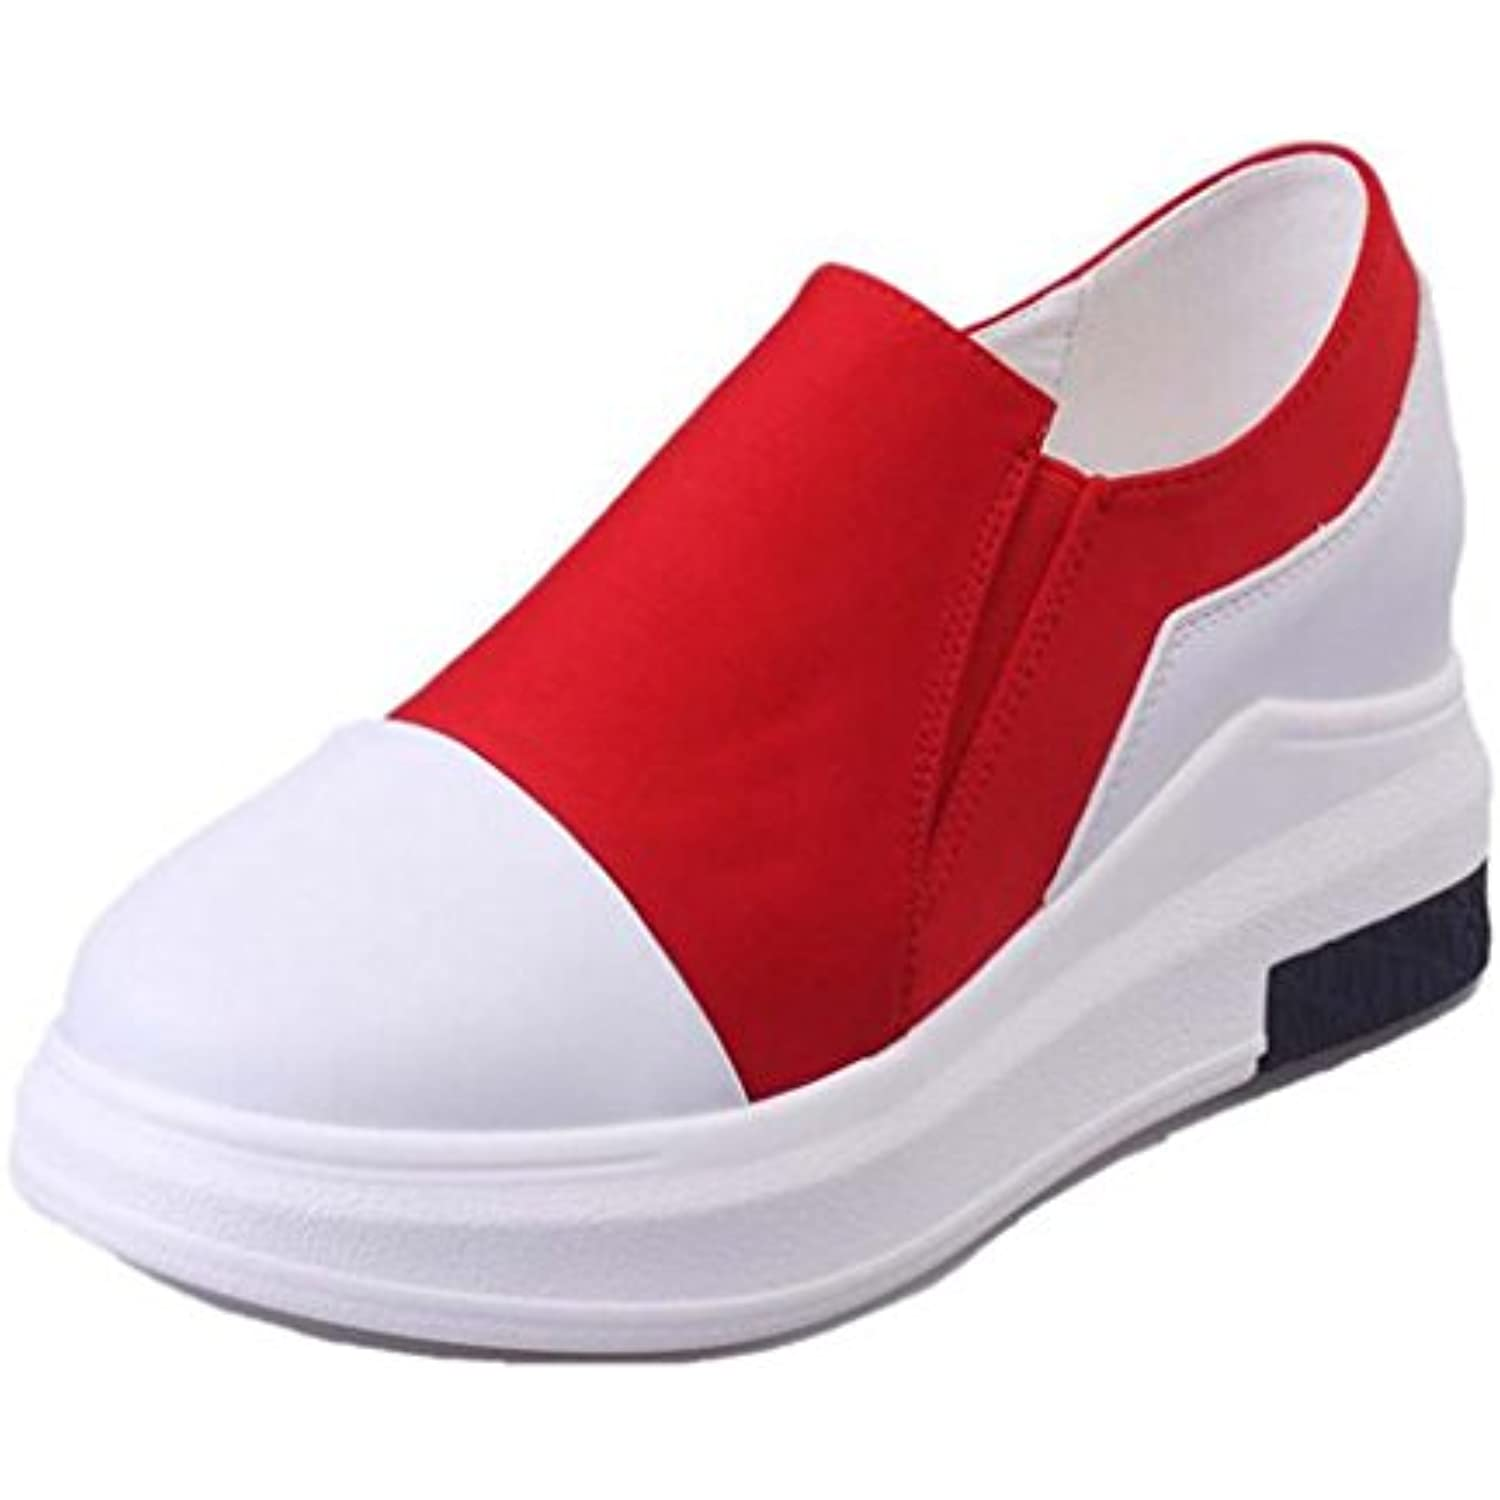 Binying Chaussure Femme Mode Mocassin slip-on agrave; agrave; agrave; Talon Compens eacute; B06XY1D613 - def056